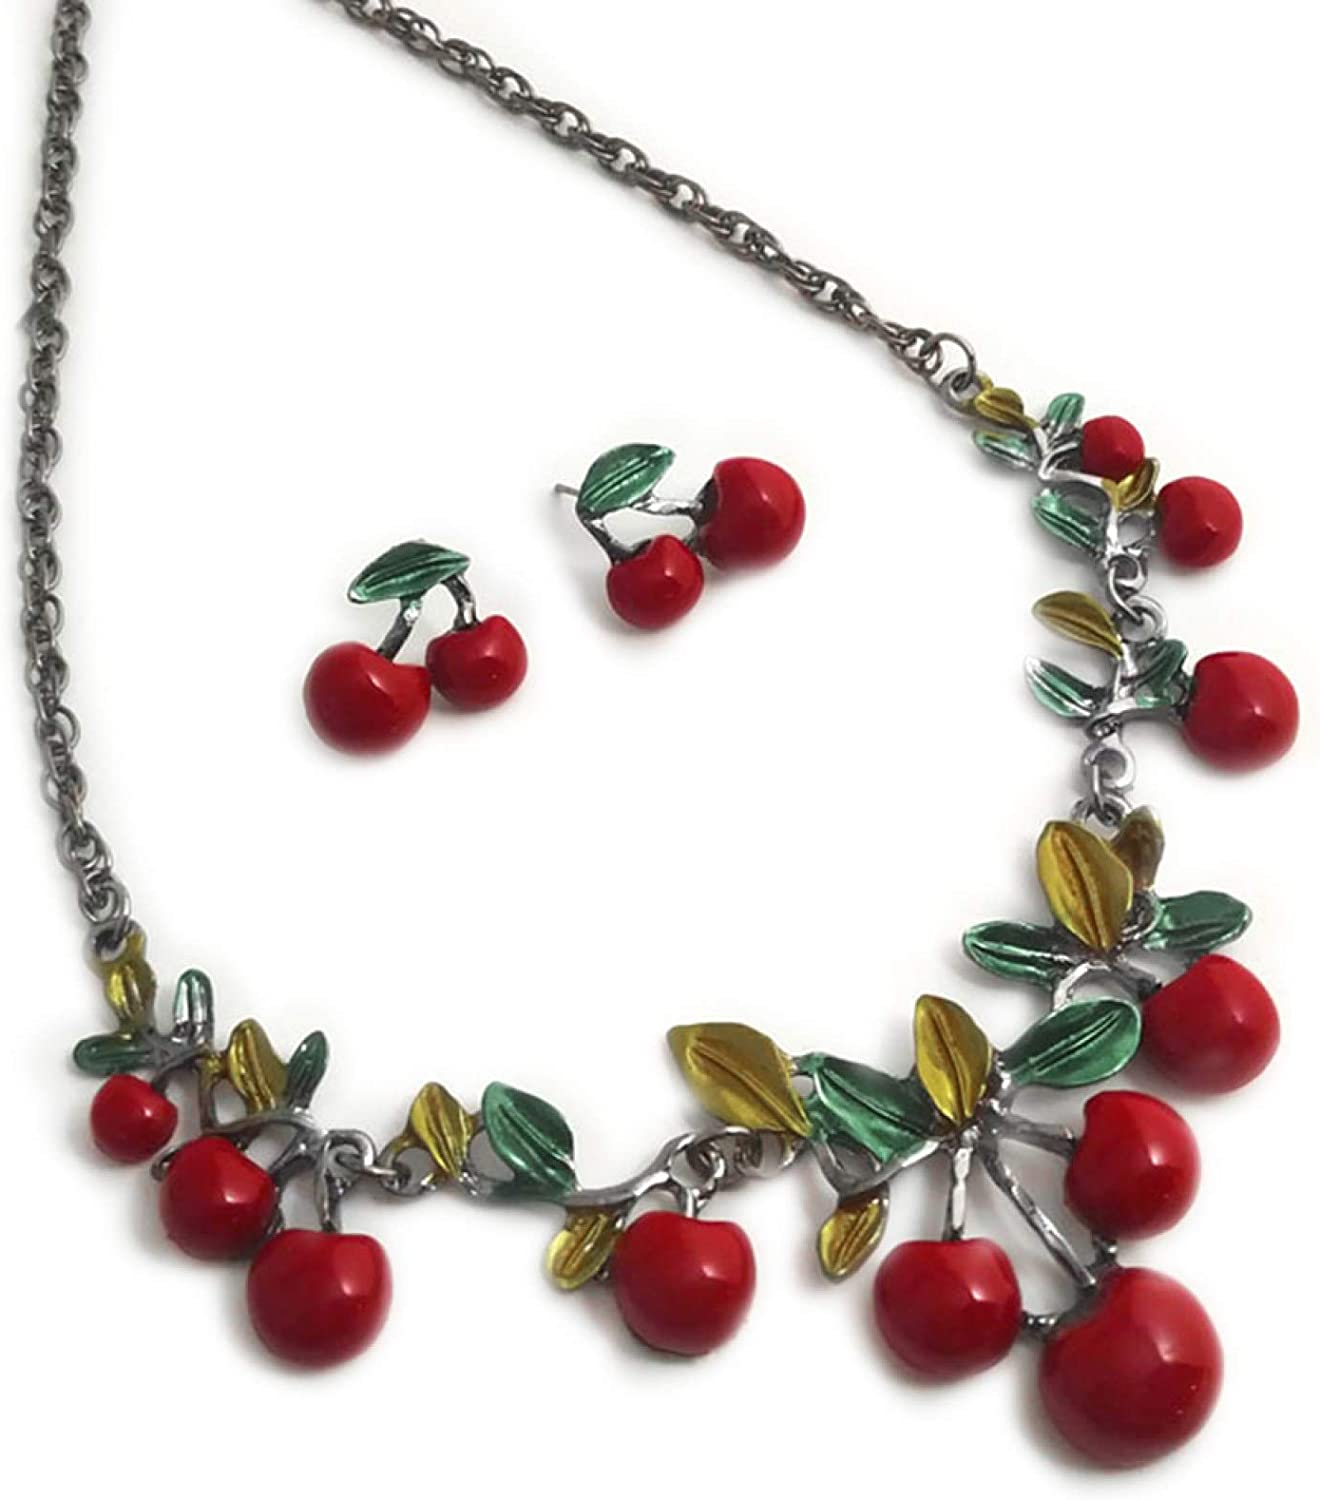 Fashion Red Cherry Clavicle Chain Necklace Ear Stud Set Jewelry Accessory for Women Girls Teens